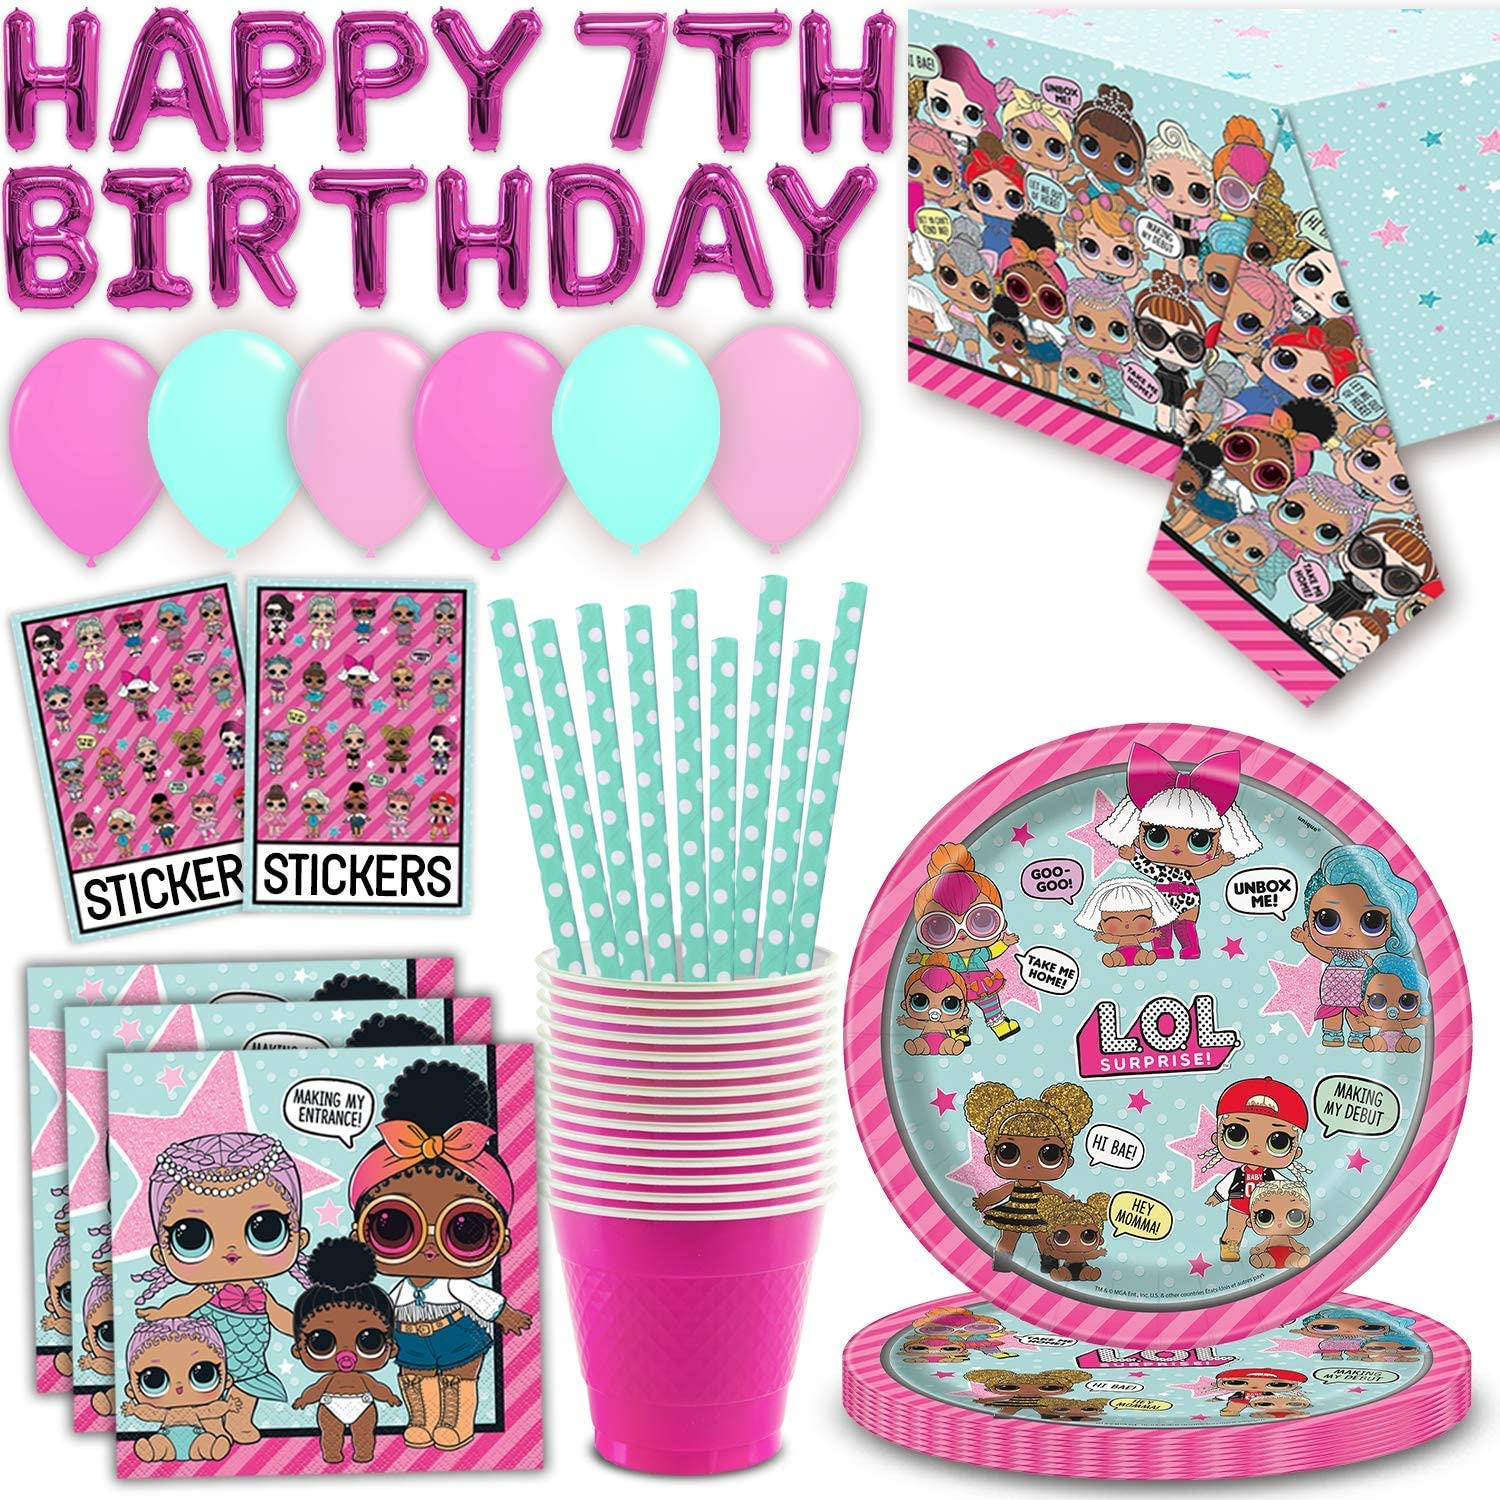 LOL SURPRISE Plastic Material 2 Counts Table Cover Girl Party Supplies Party